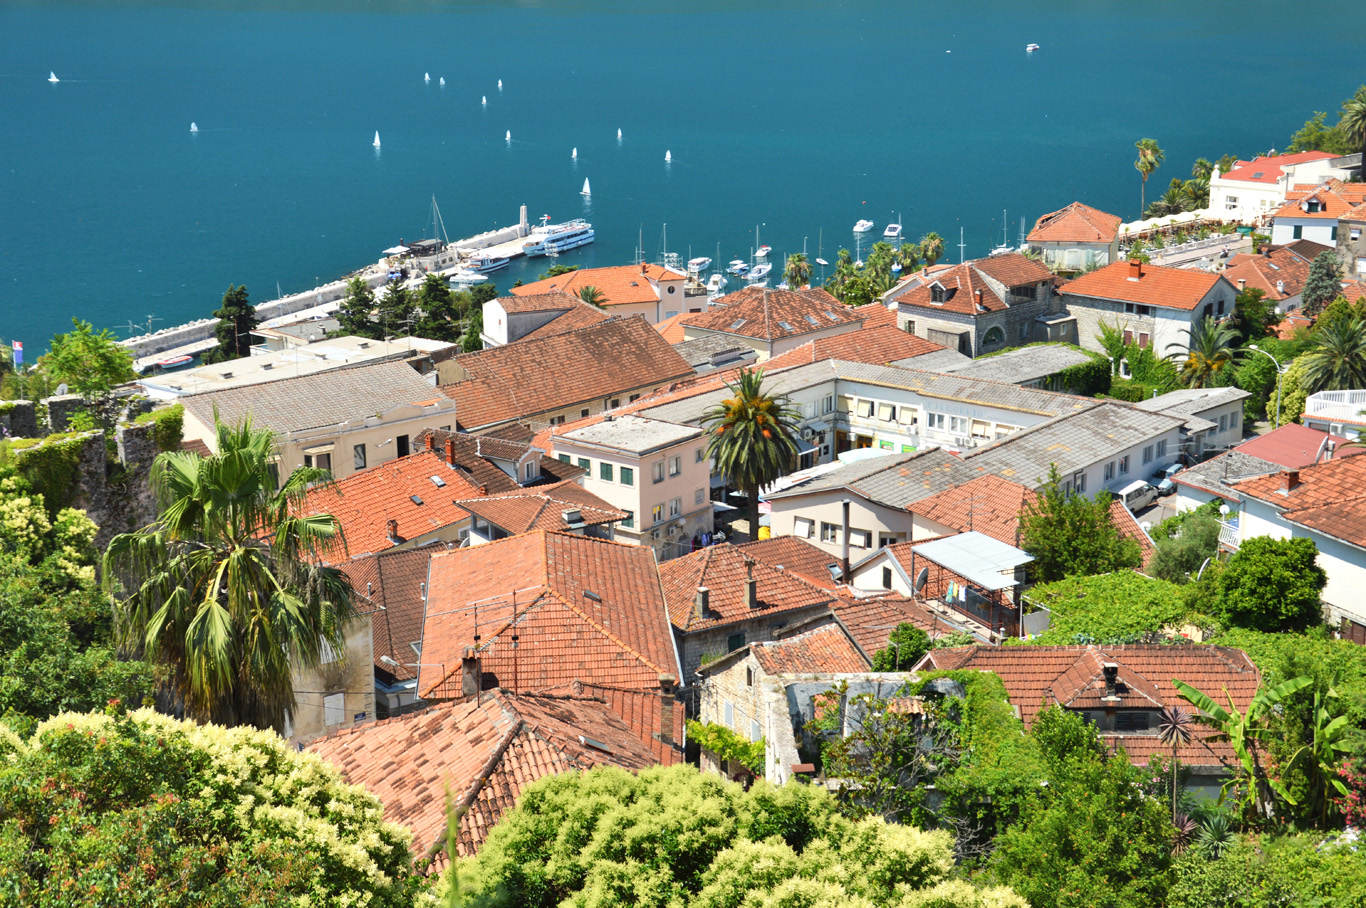 Old Town, the port and the sea